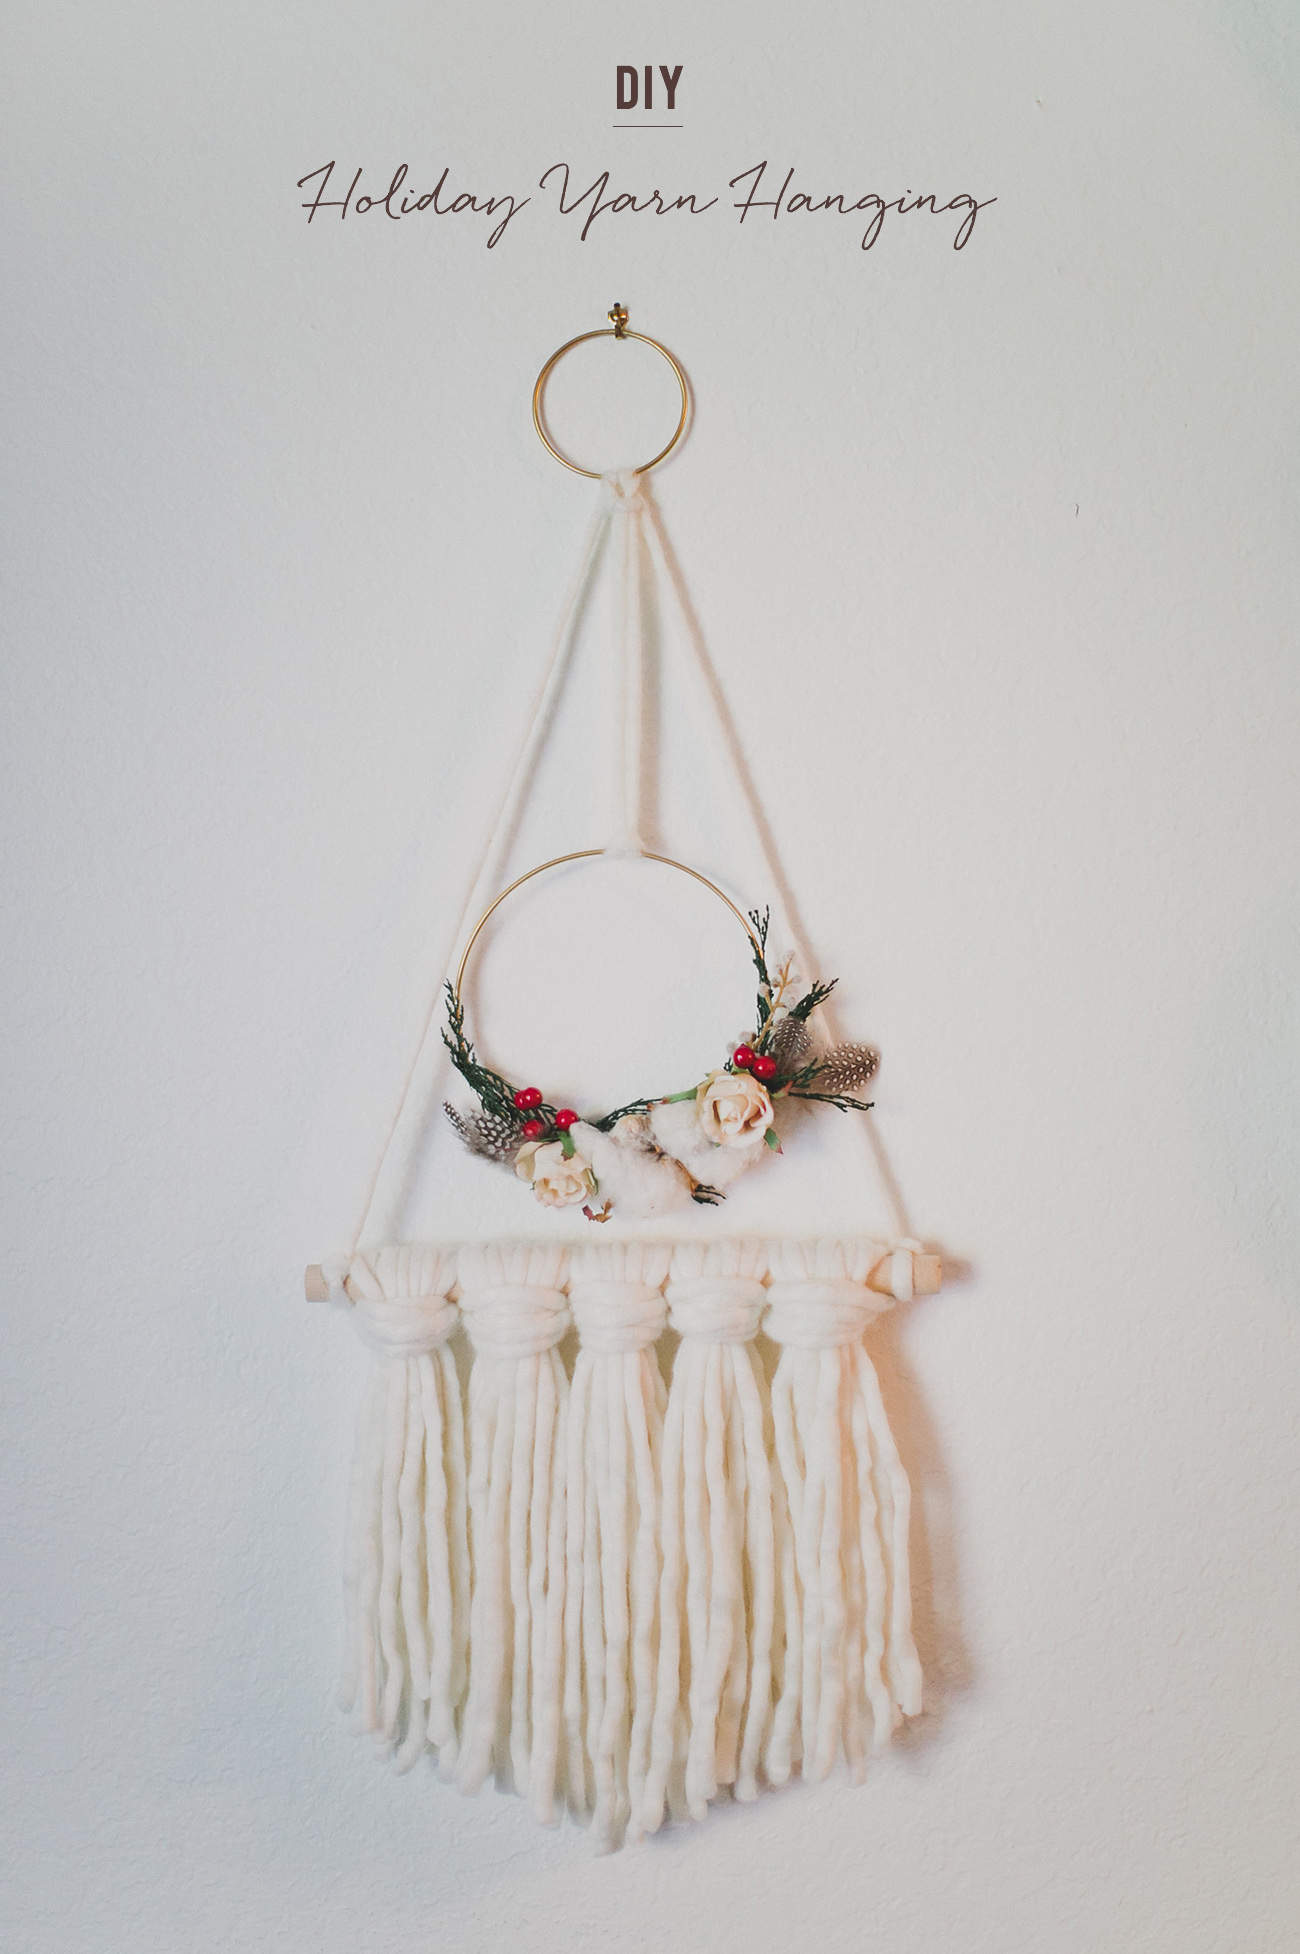 holiday yarn hanging DIY